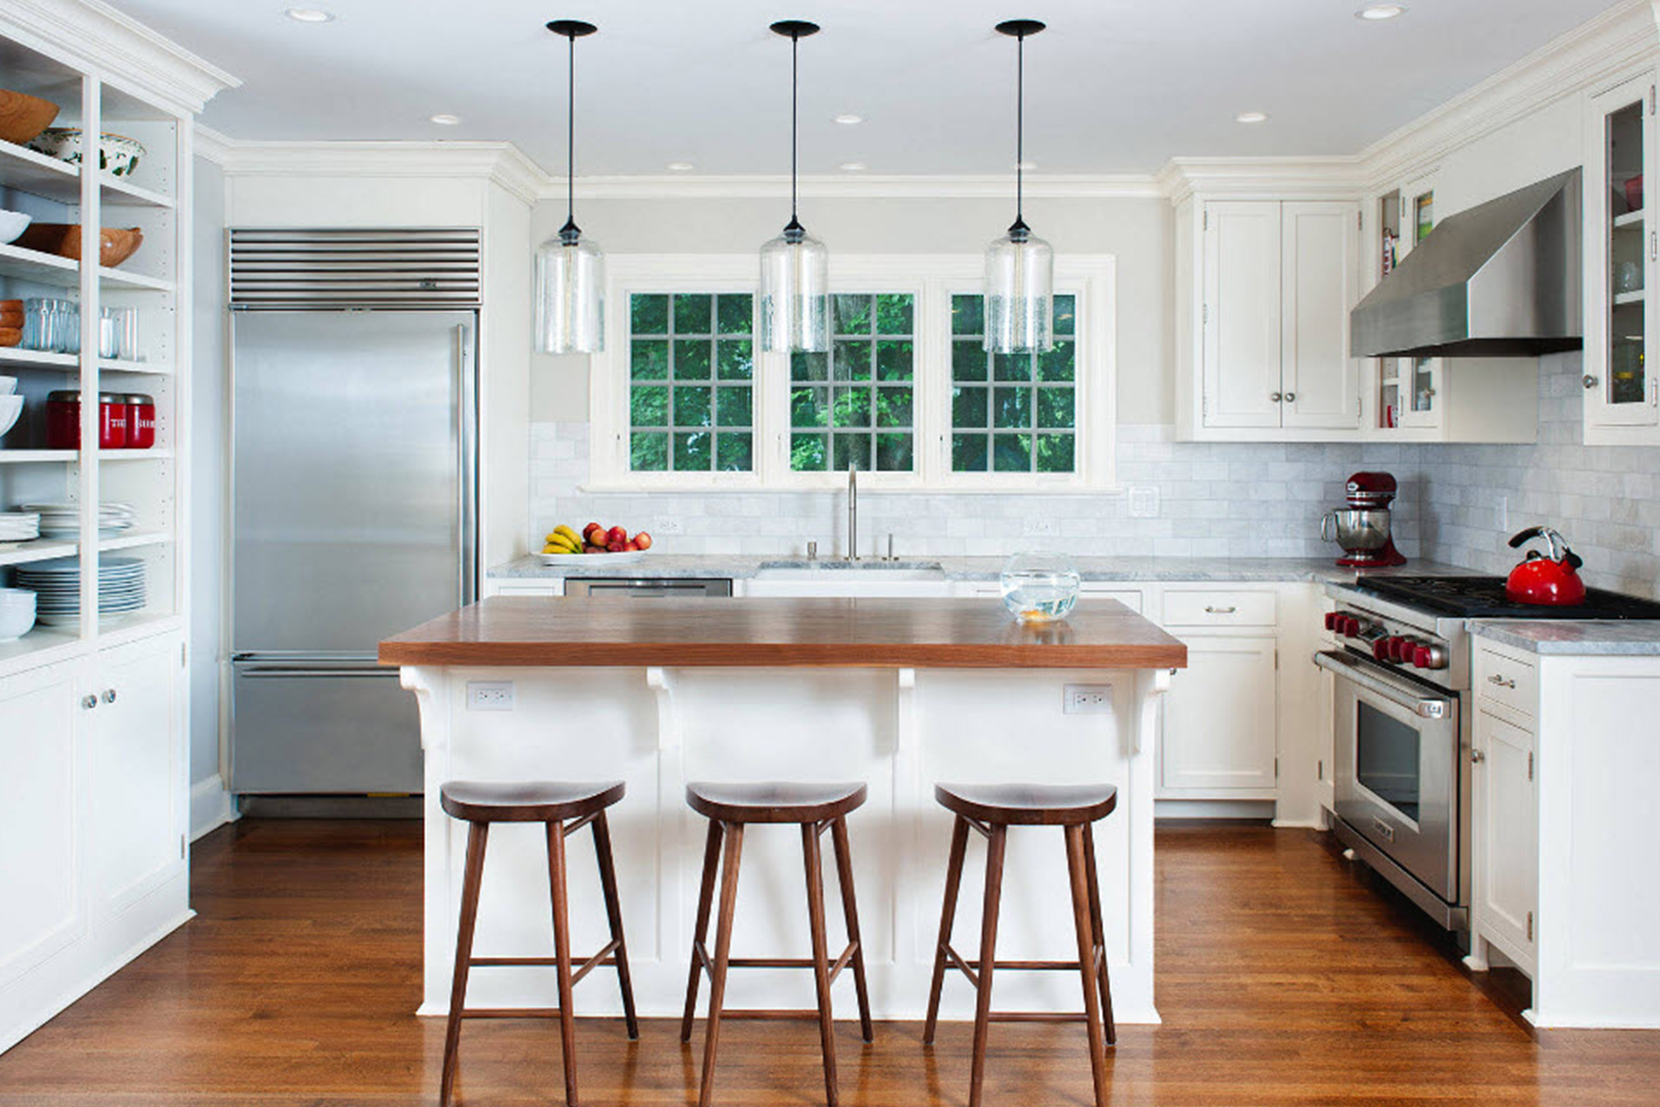 Lighting-Project-Pages_0007s_0001_Kitchen-Modern-Pendant-Lighting-Effervescent.png